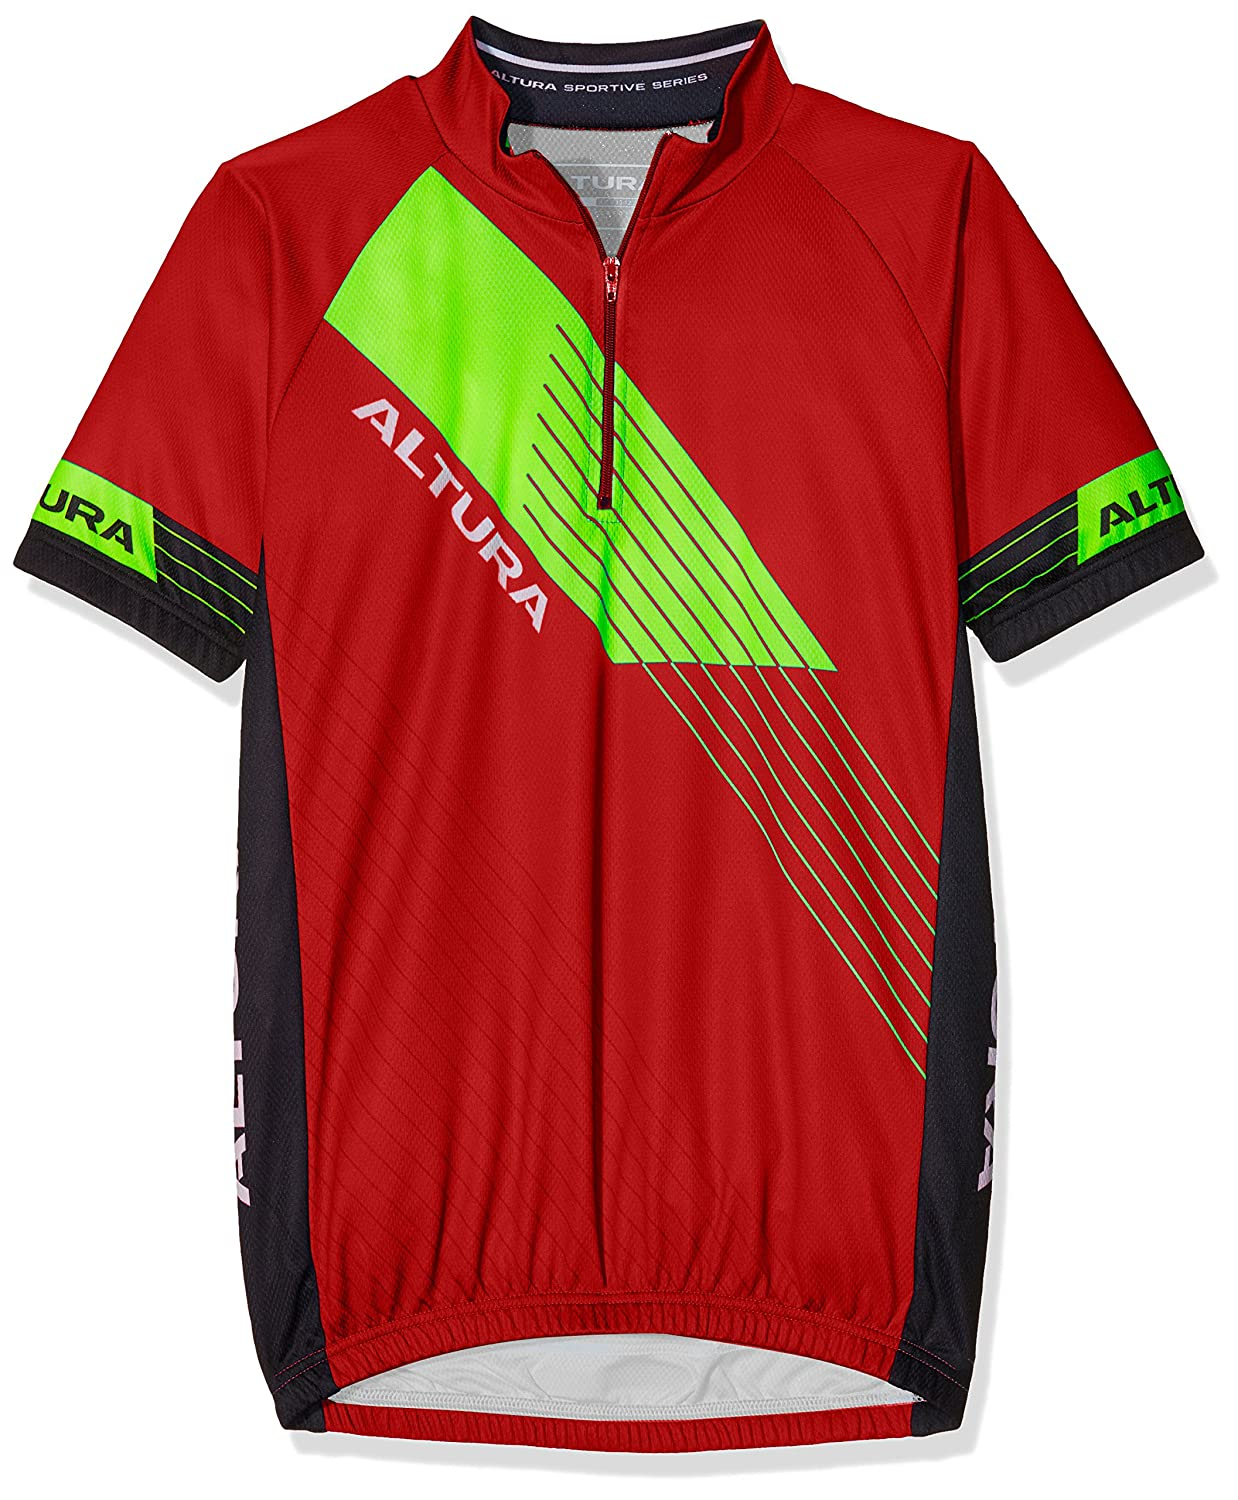 Altura Youth Sportive Short Sleeve Jersey  Altura  Amazon.co.uk  Sports    Outdoors 14c618c0c